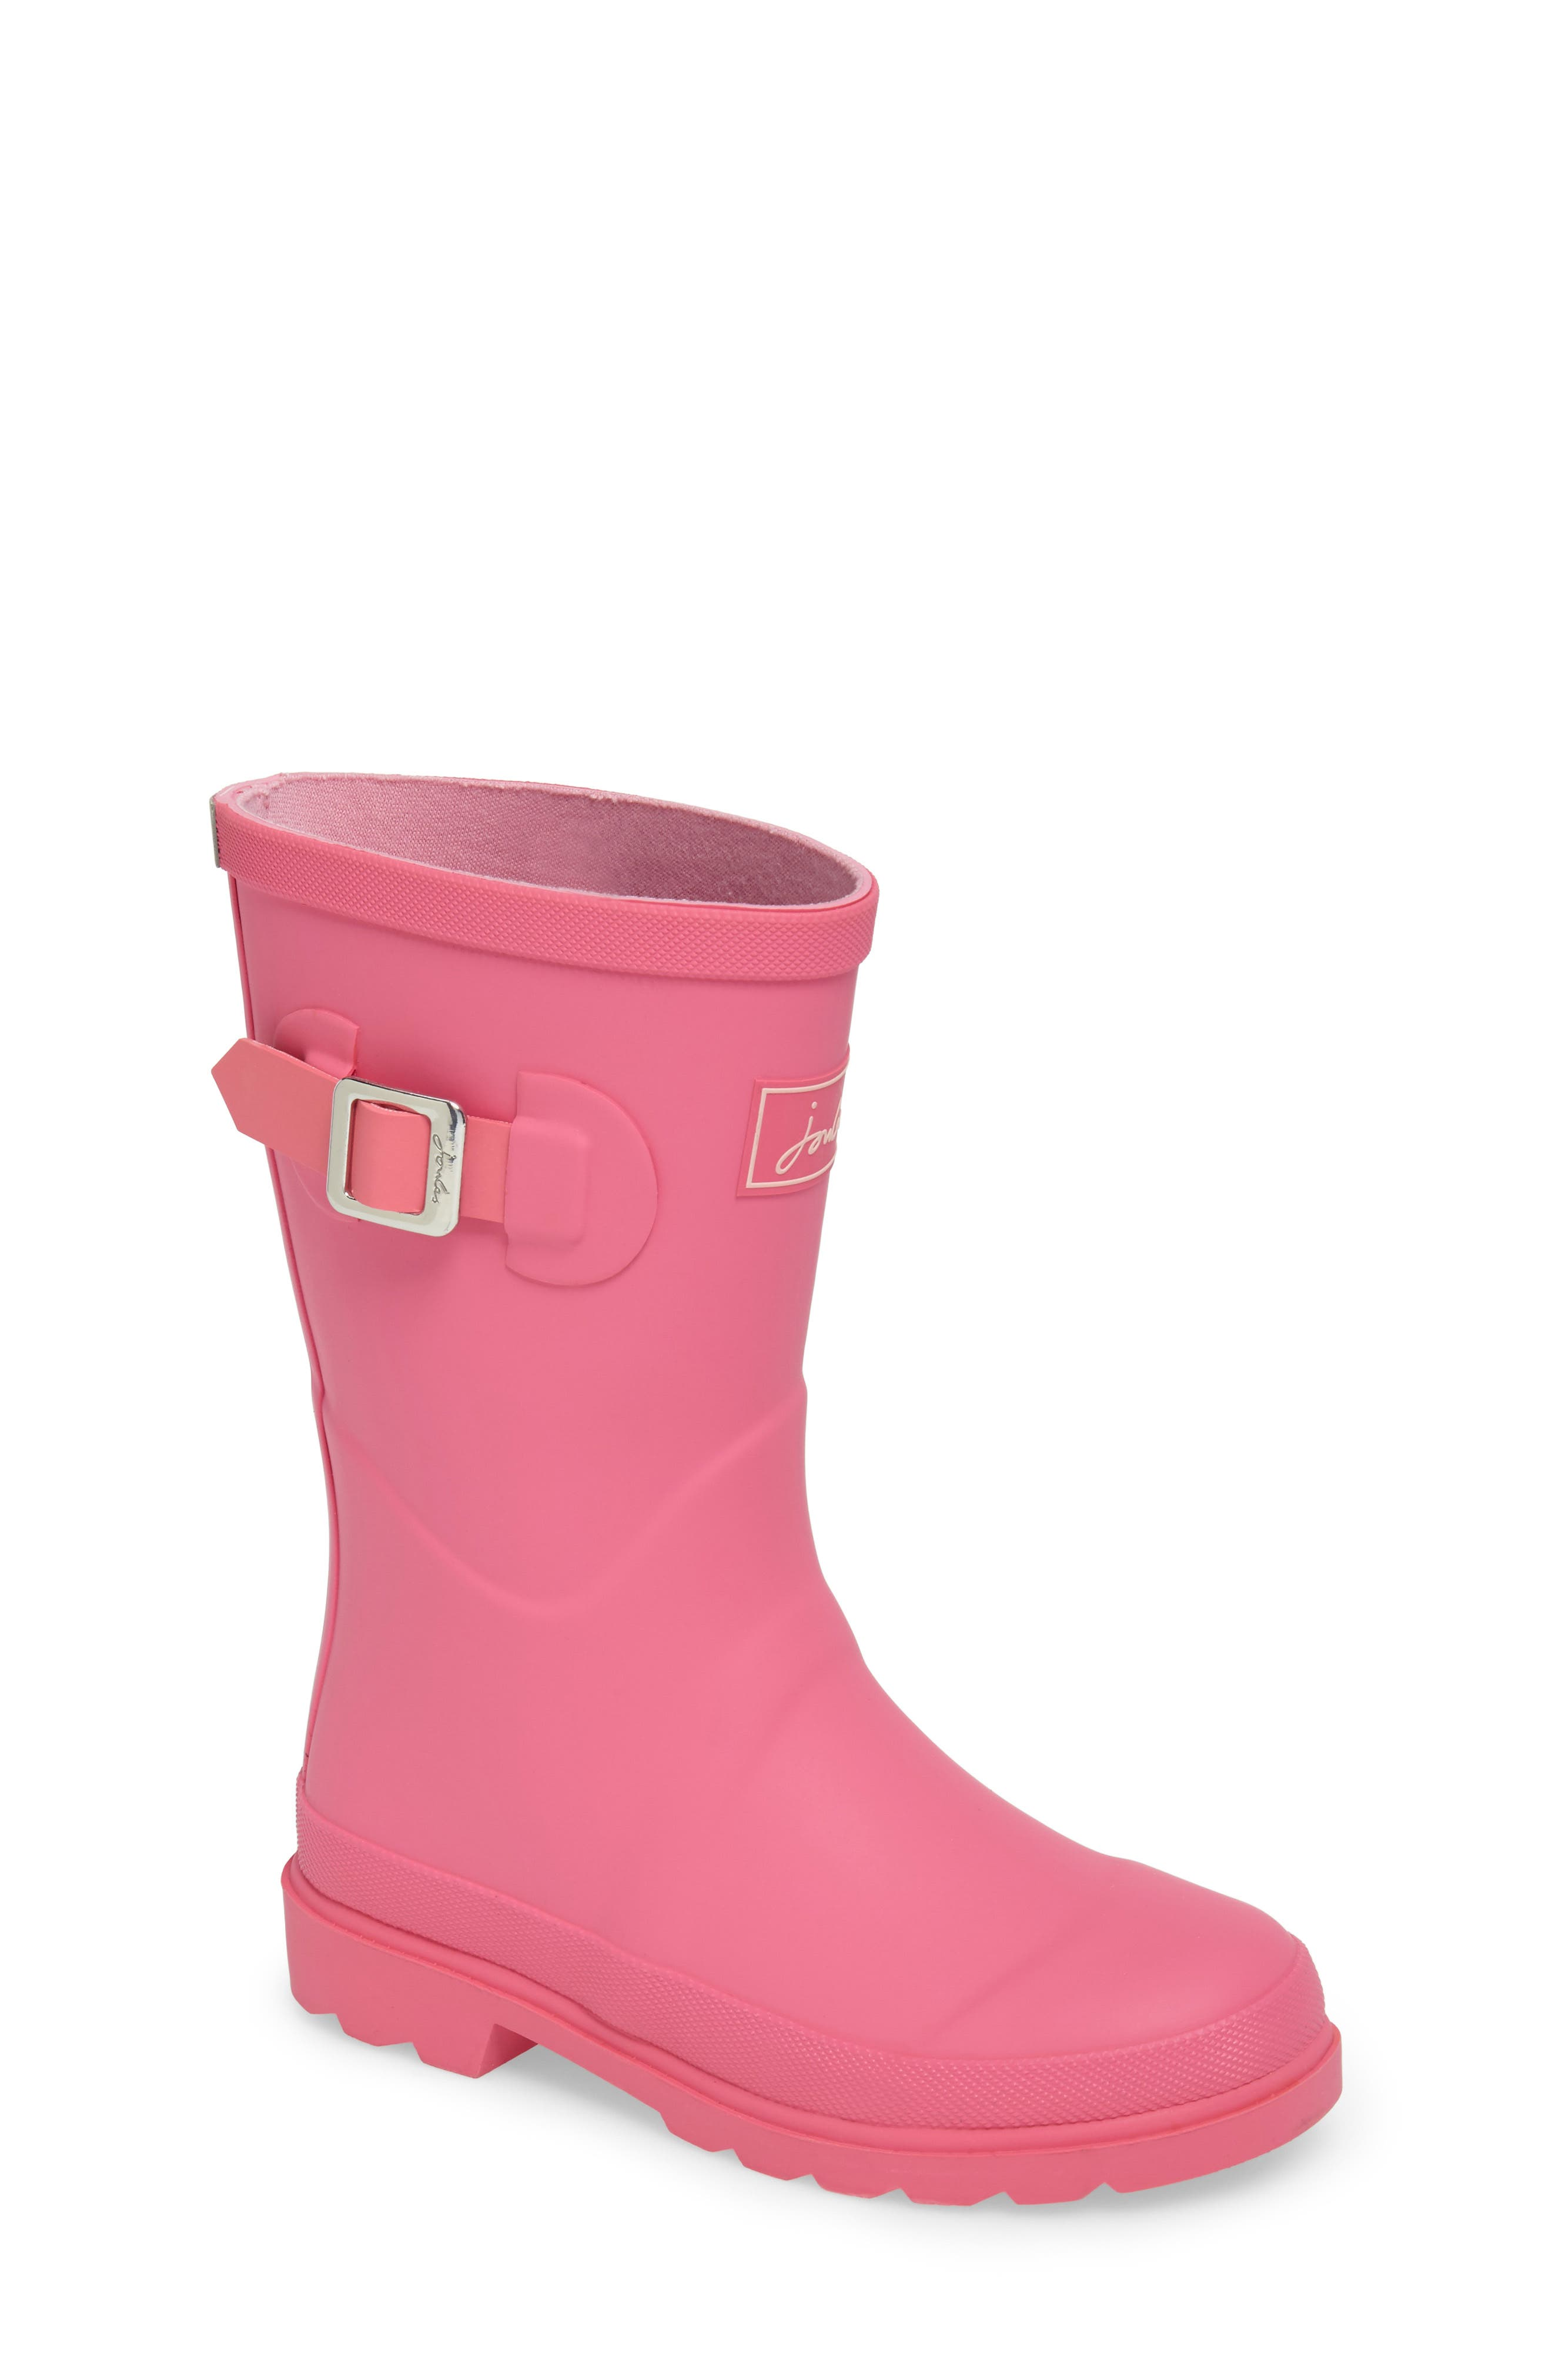 Welly Matte Waterproof Rain Boot,                             Main thumbnail 1, color,                             665